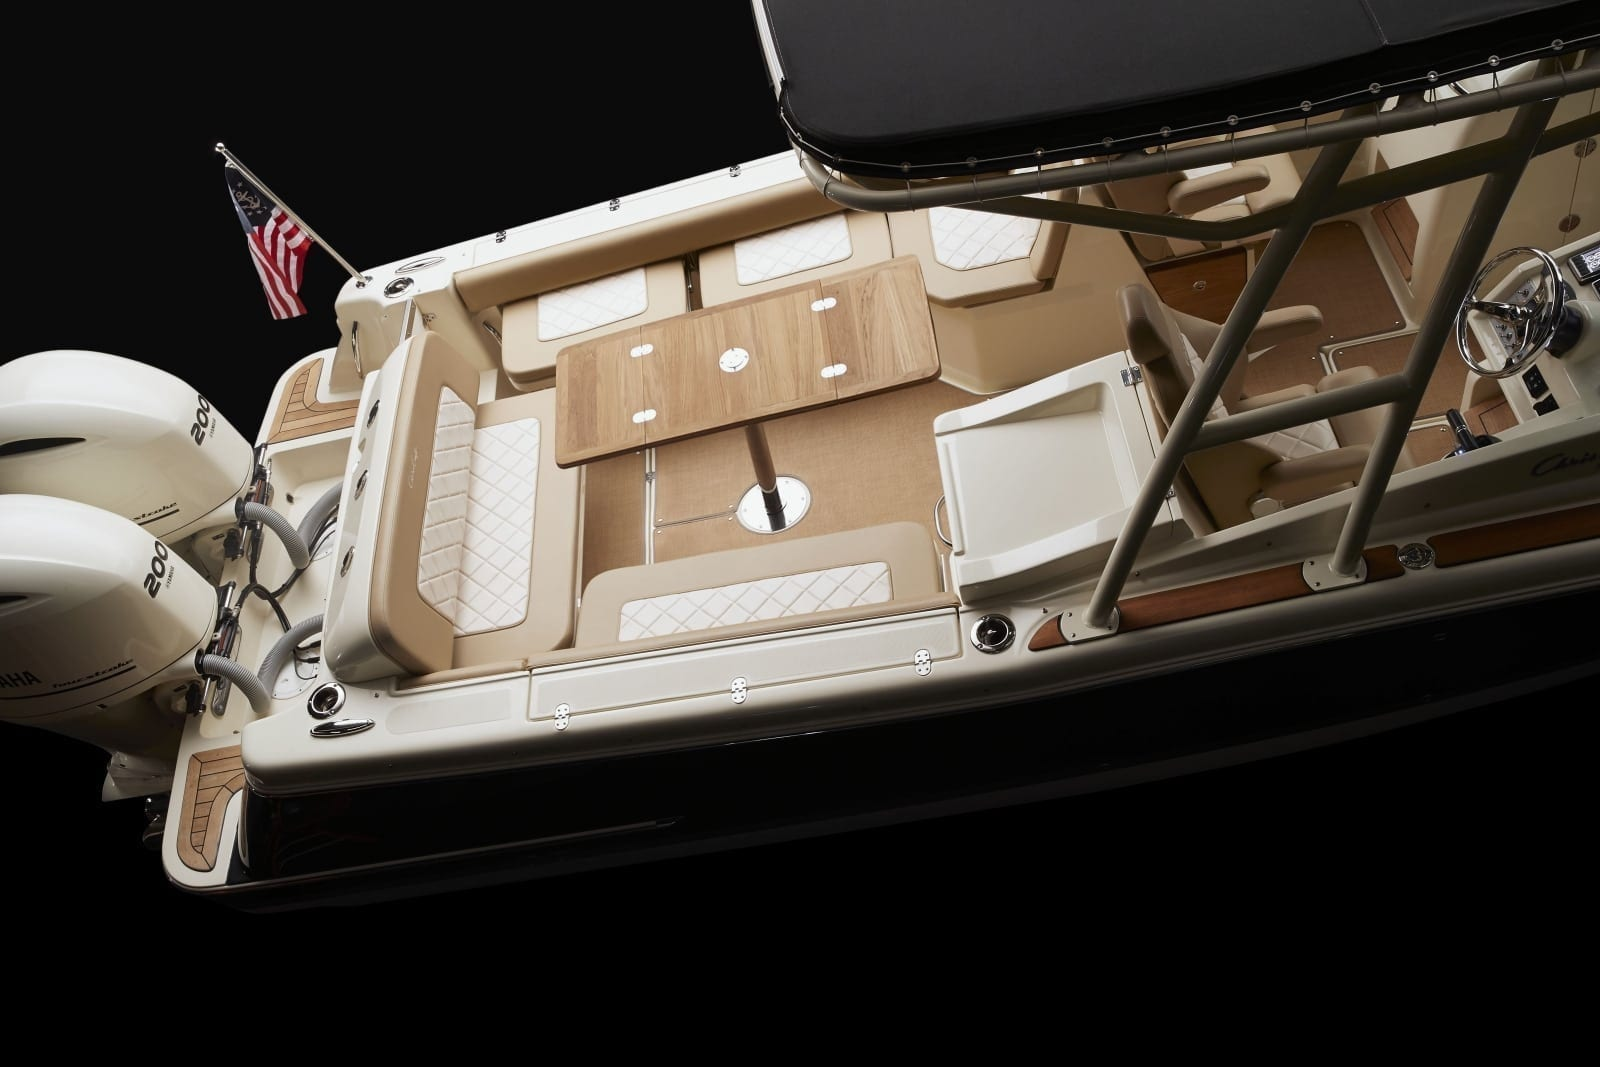 Chris Craft Calypso 26 Rear Table